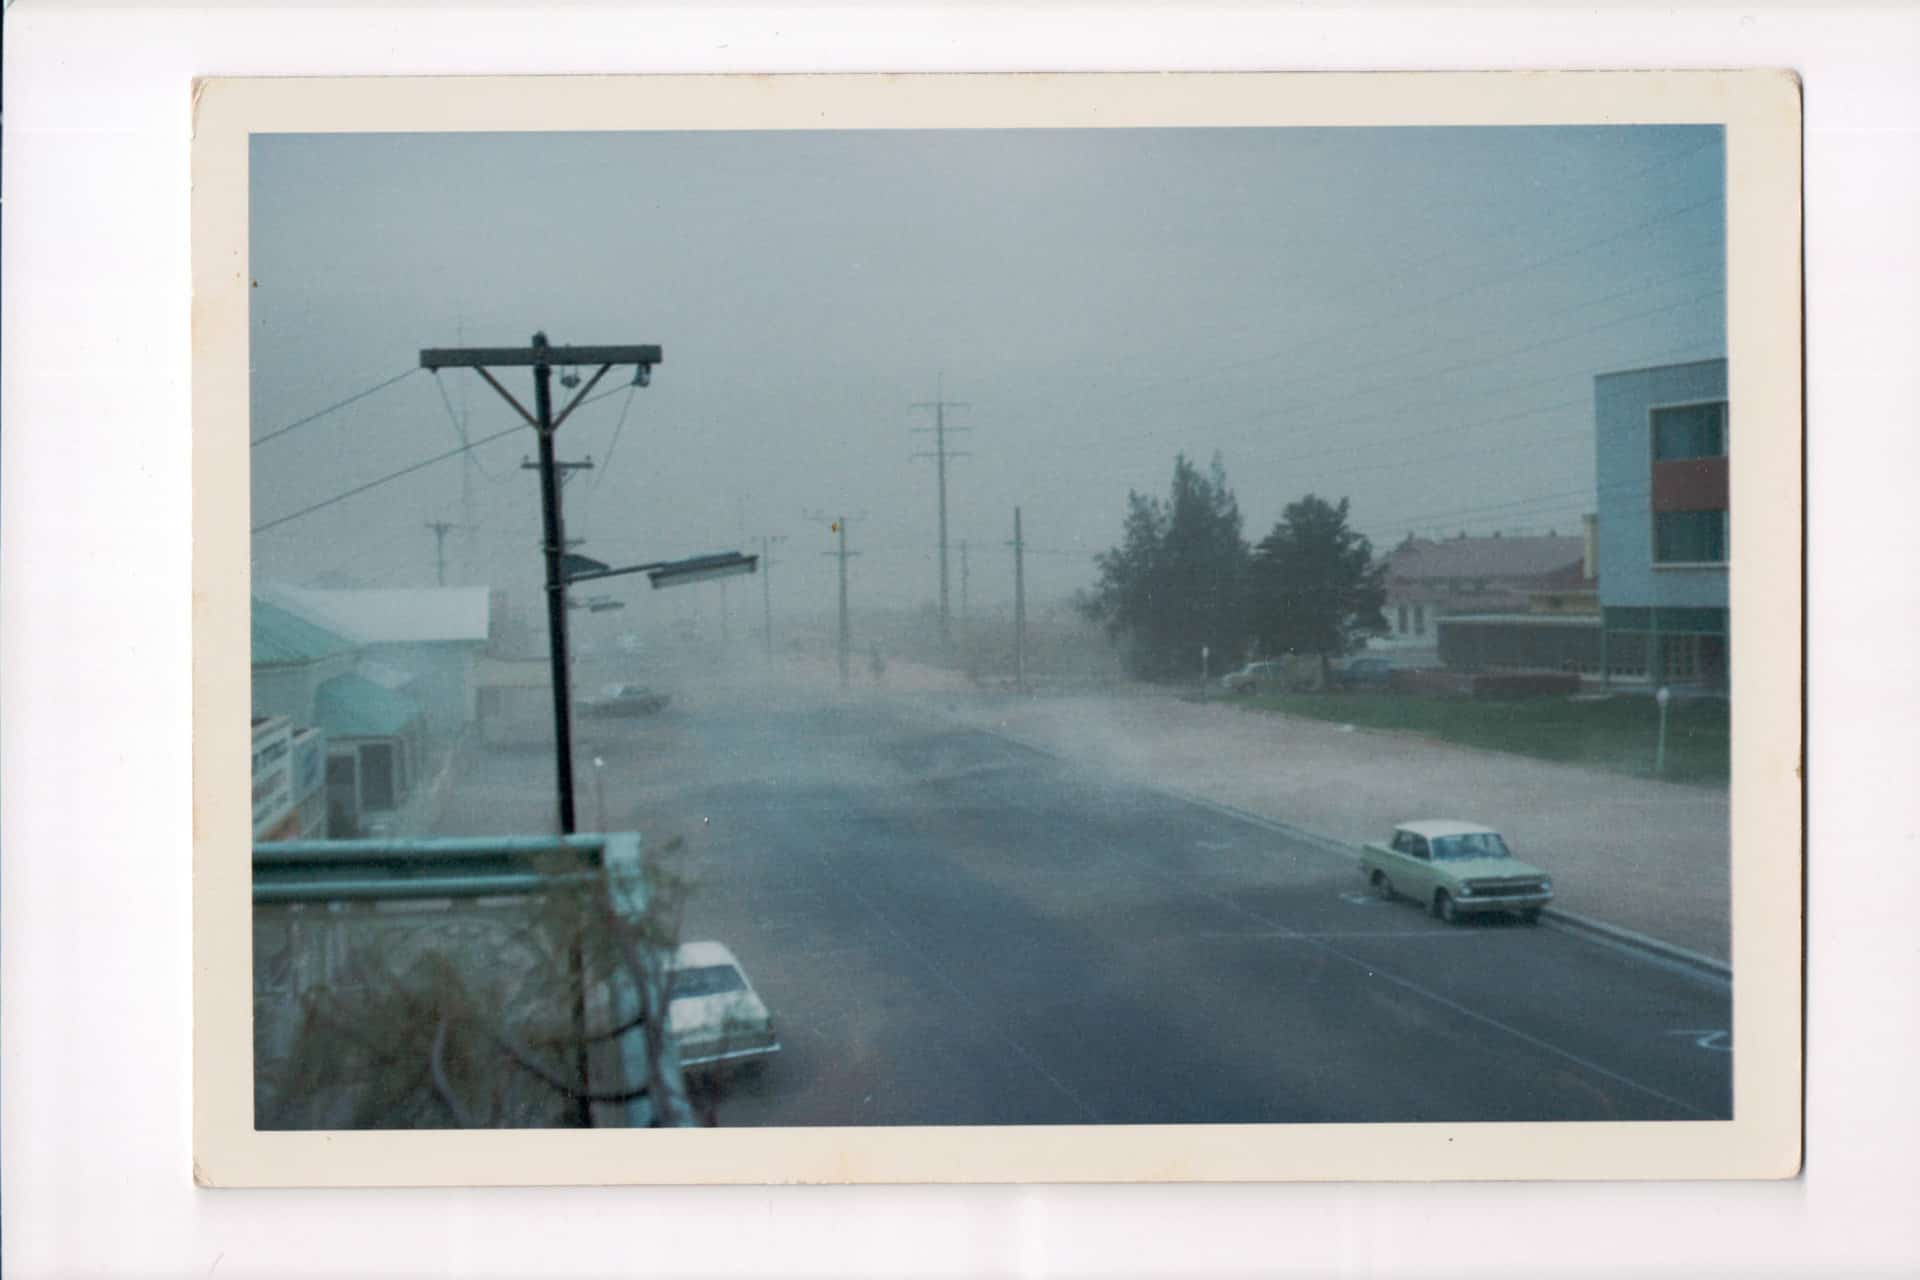 Inscription on back: Dust storm. Hot! And then didn't it rain?